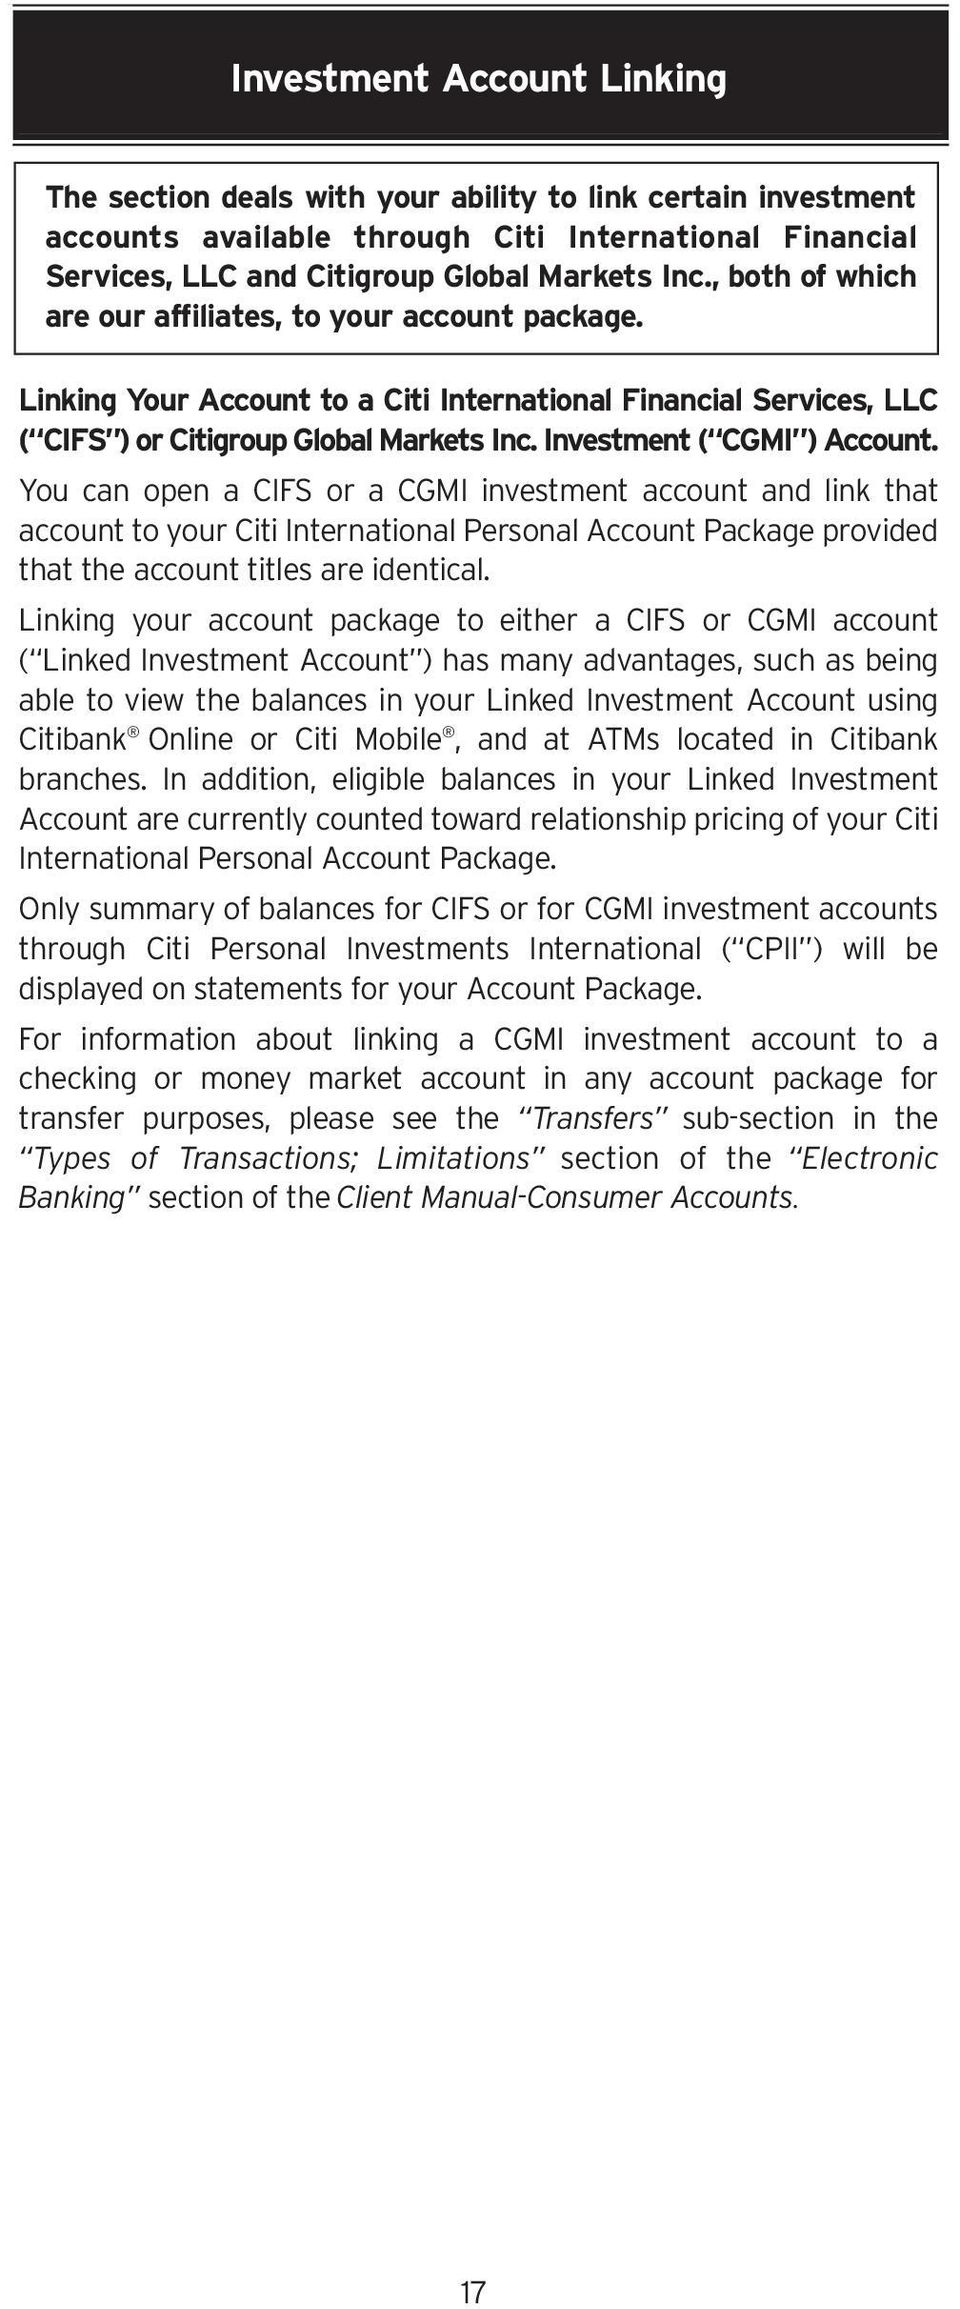 You can open a CIFS or a CGMI investment account and link that account to your Citi International Personal Account Package provided that the account titles are identical.